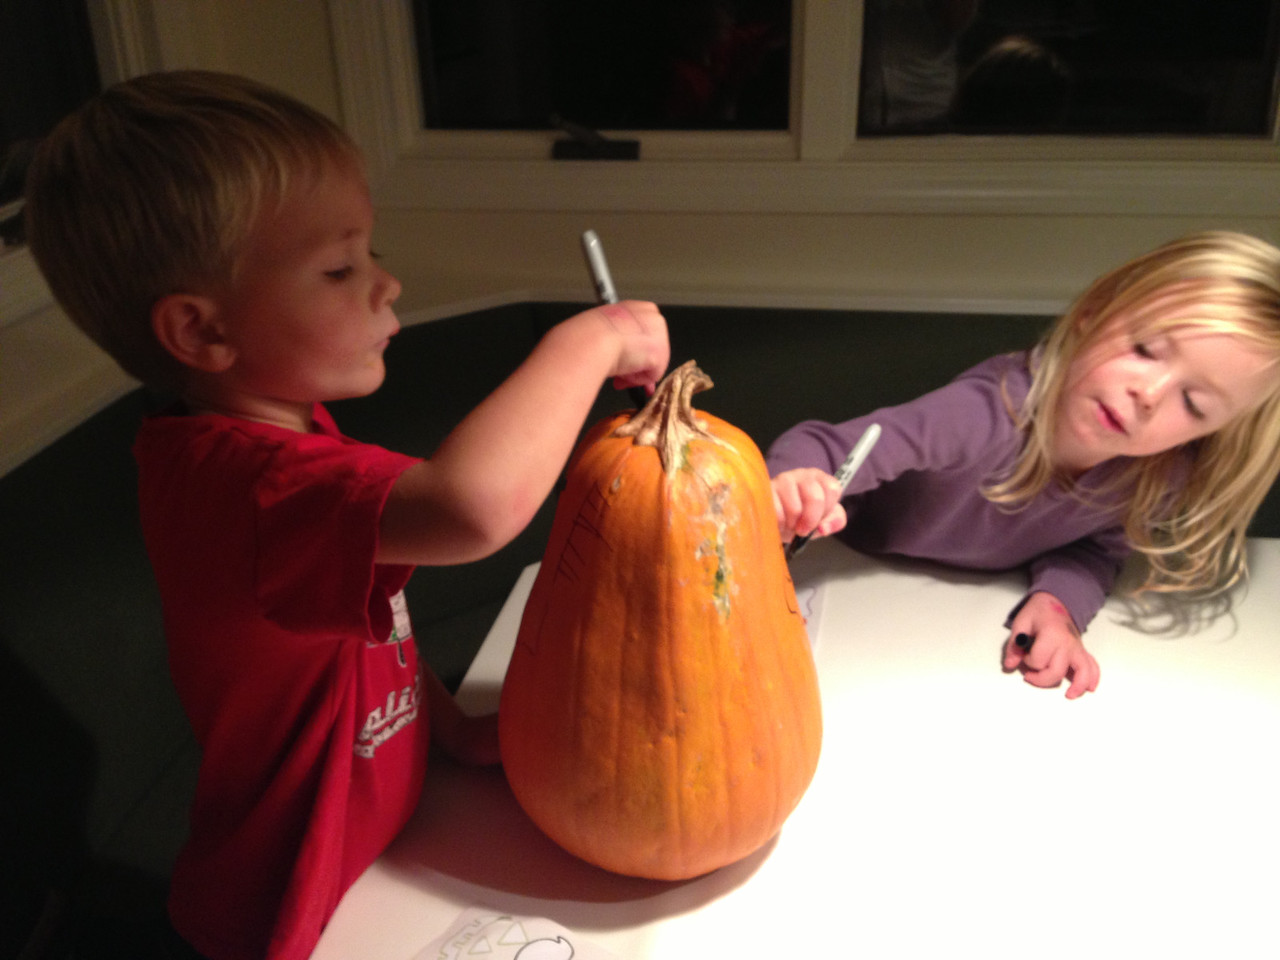 Kirian and Lily decorate the pumpkin